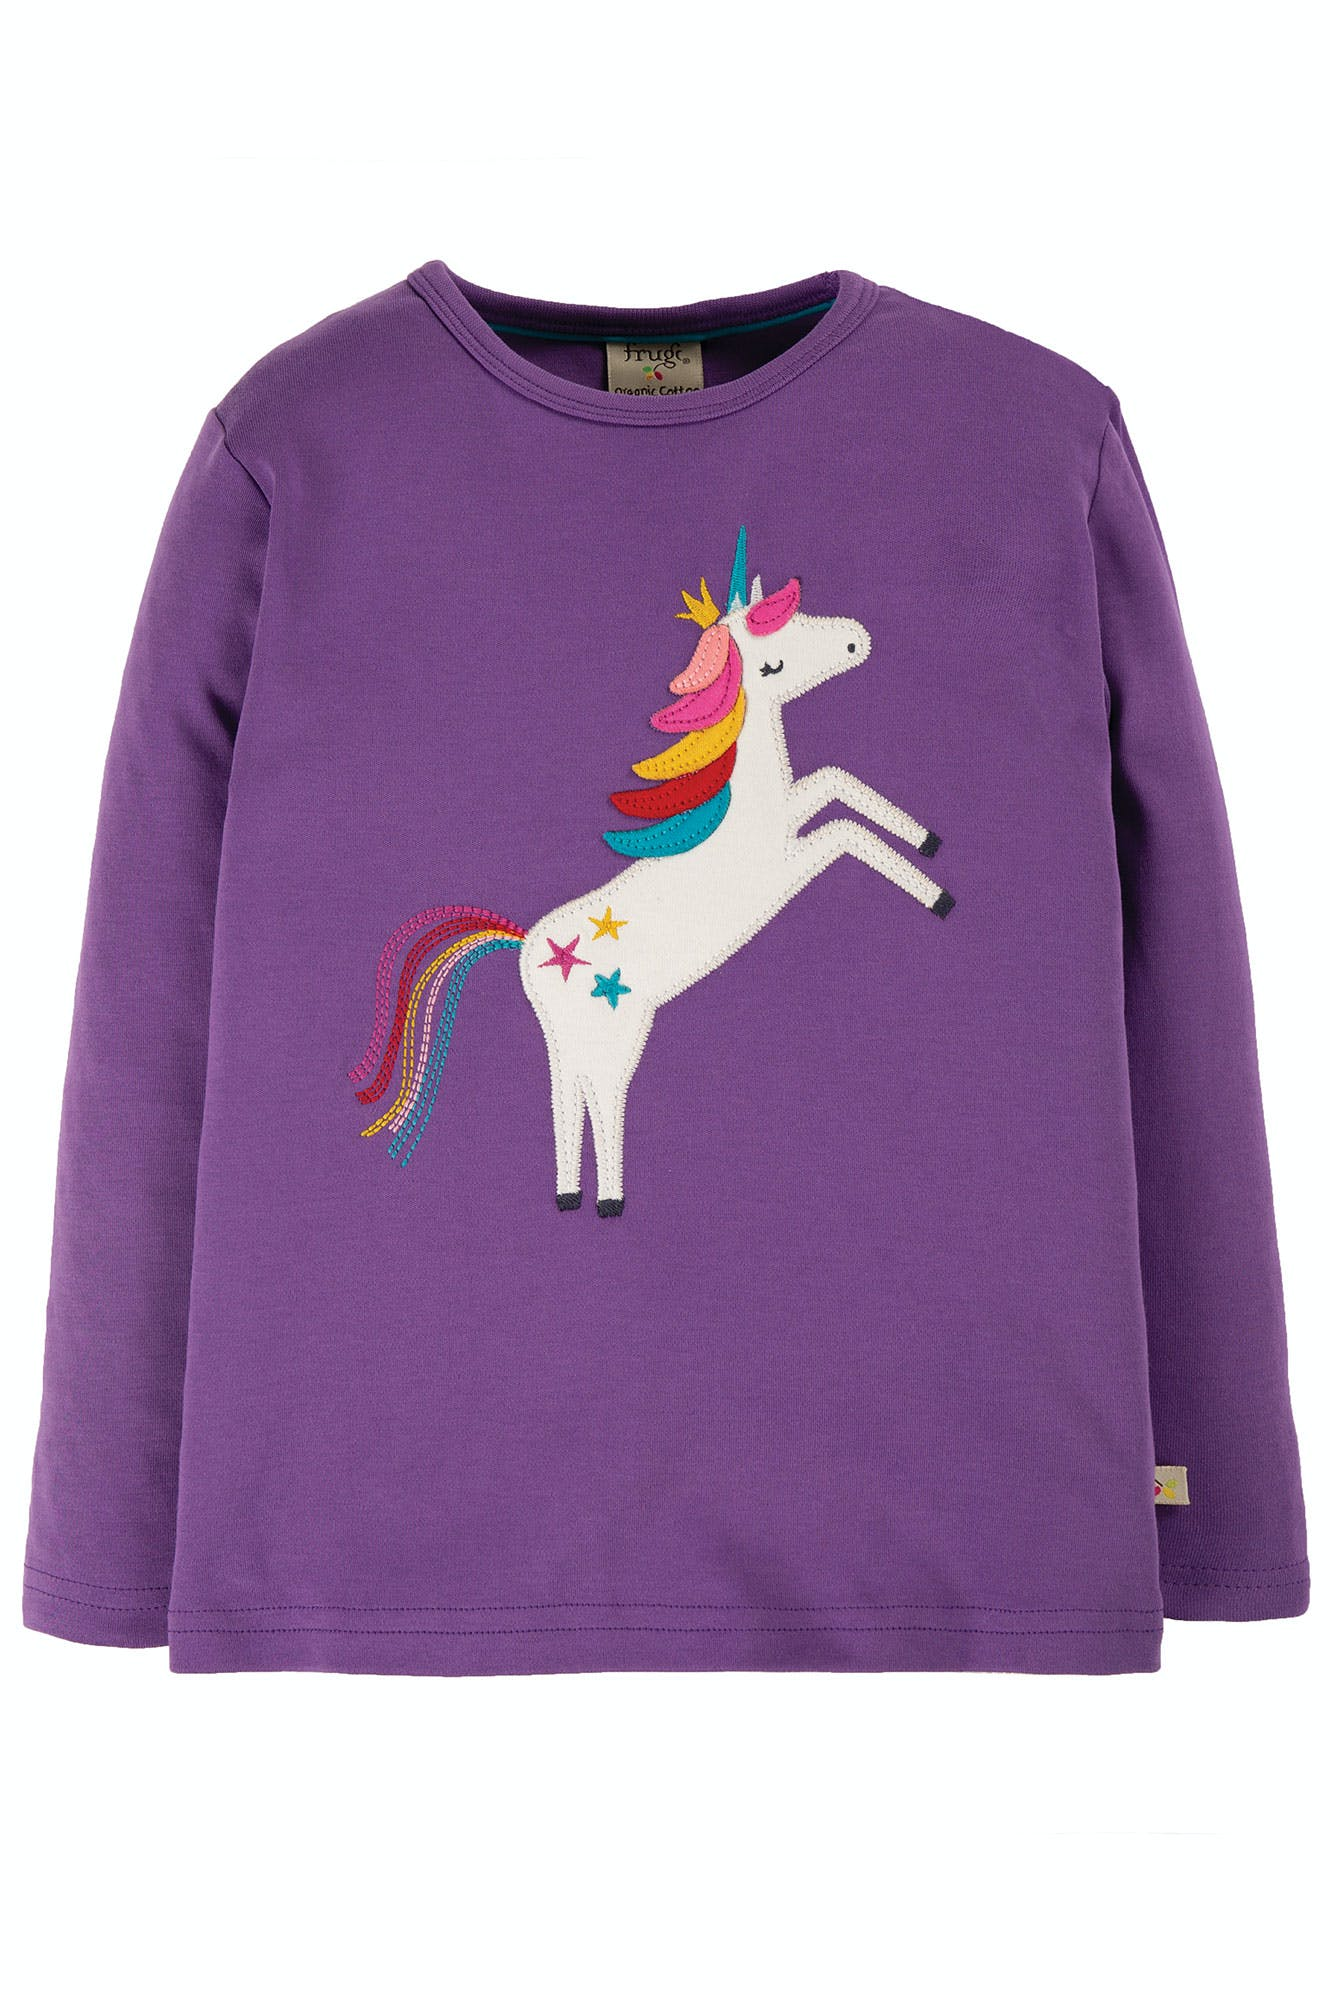 SALE £17.60 Frugi Discovery Applique Top - Thistle (Was £22)